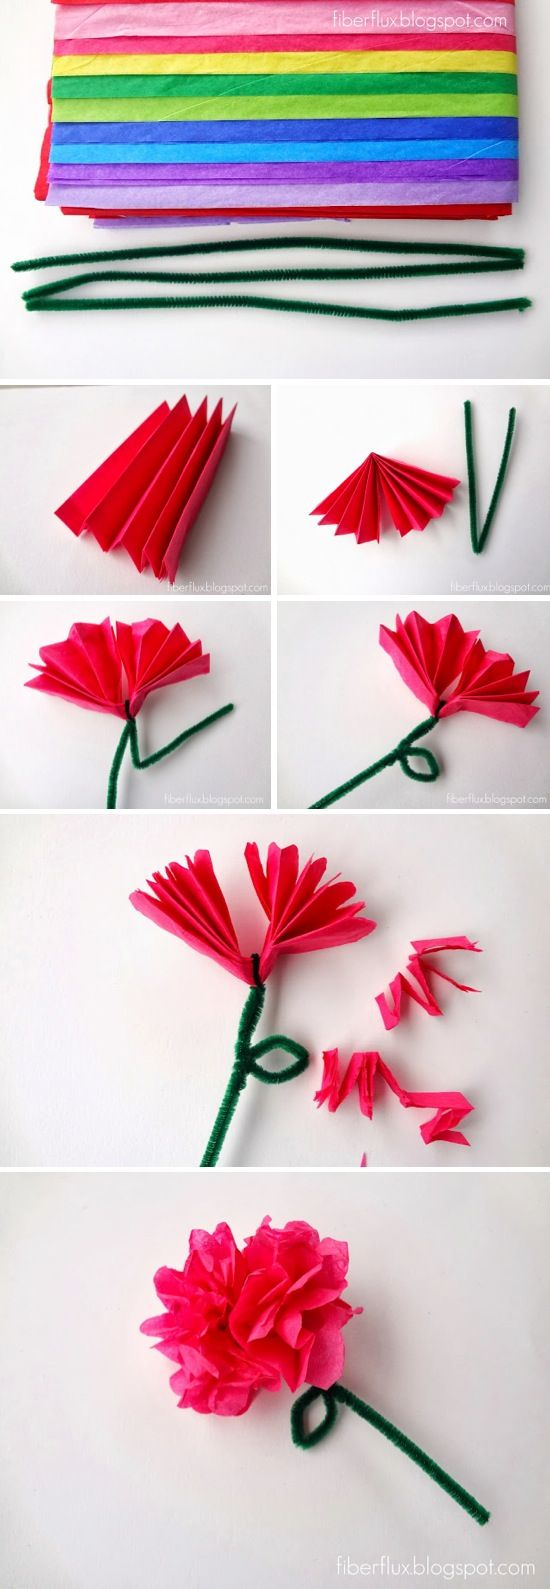 Simple flower making with tissue paper juvecenitdelacabrera simple flower making with tissue paper mightylinksfo